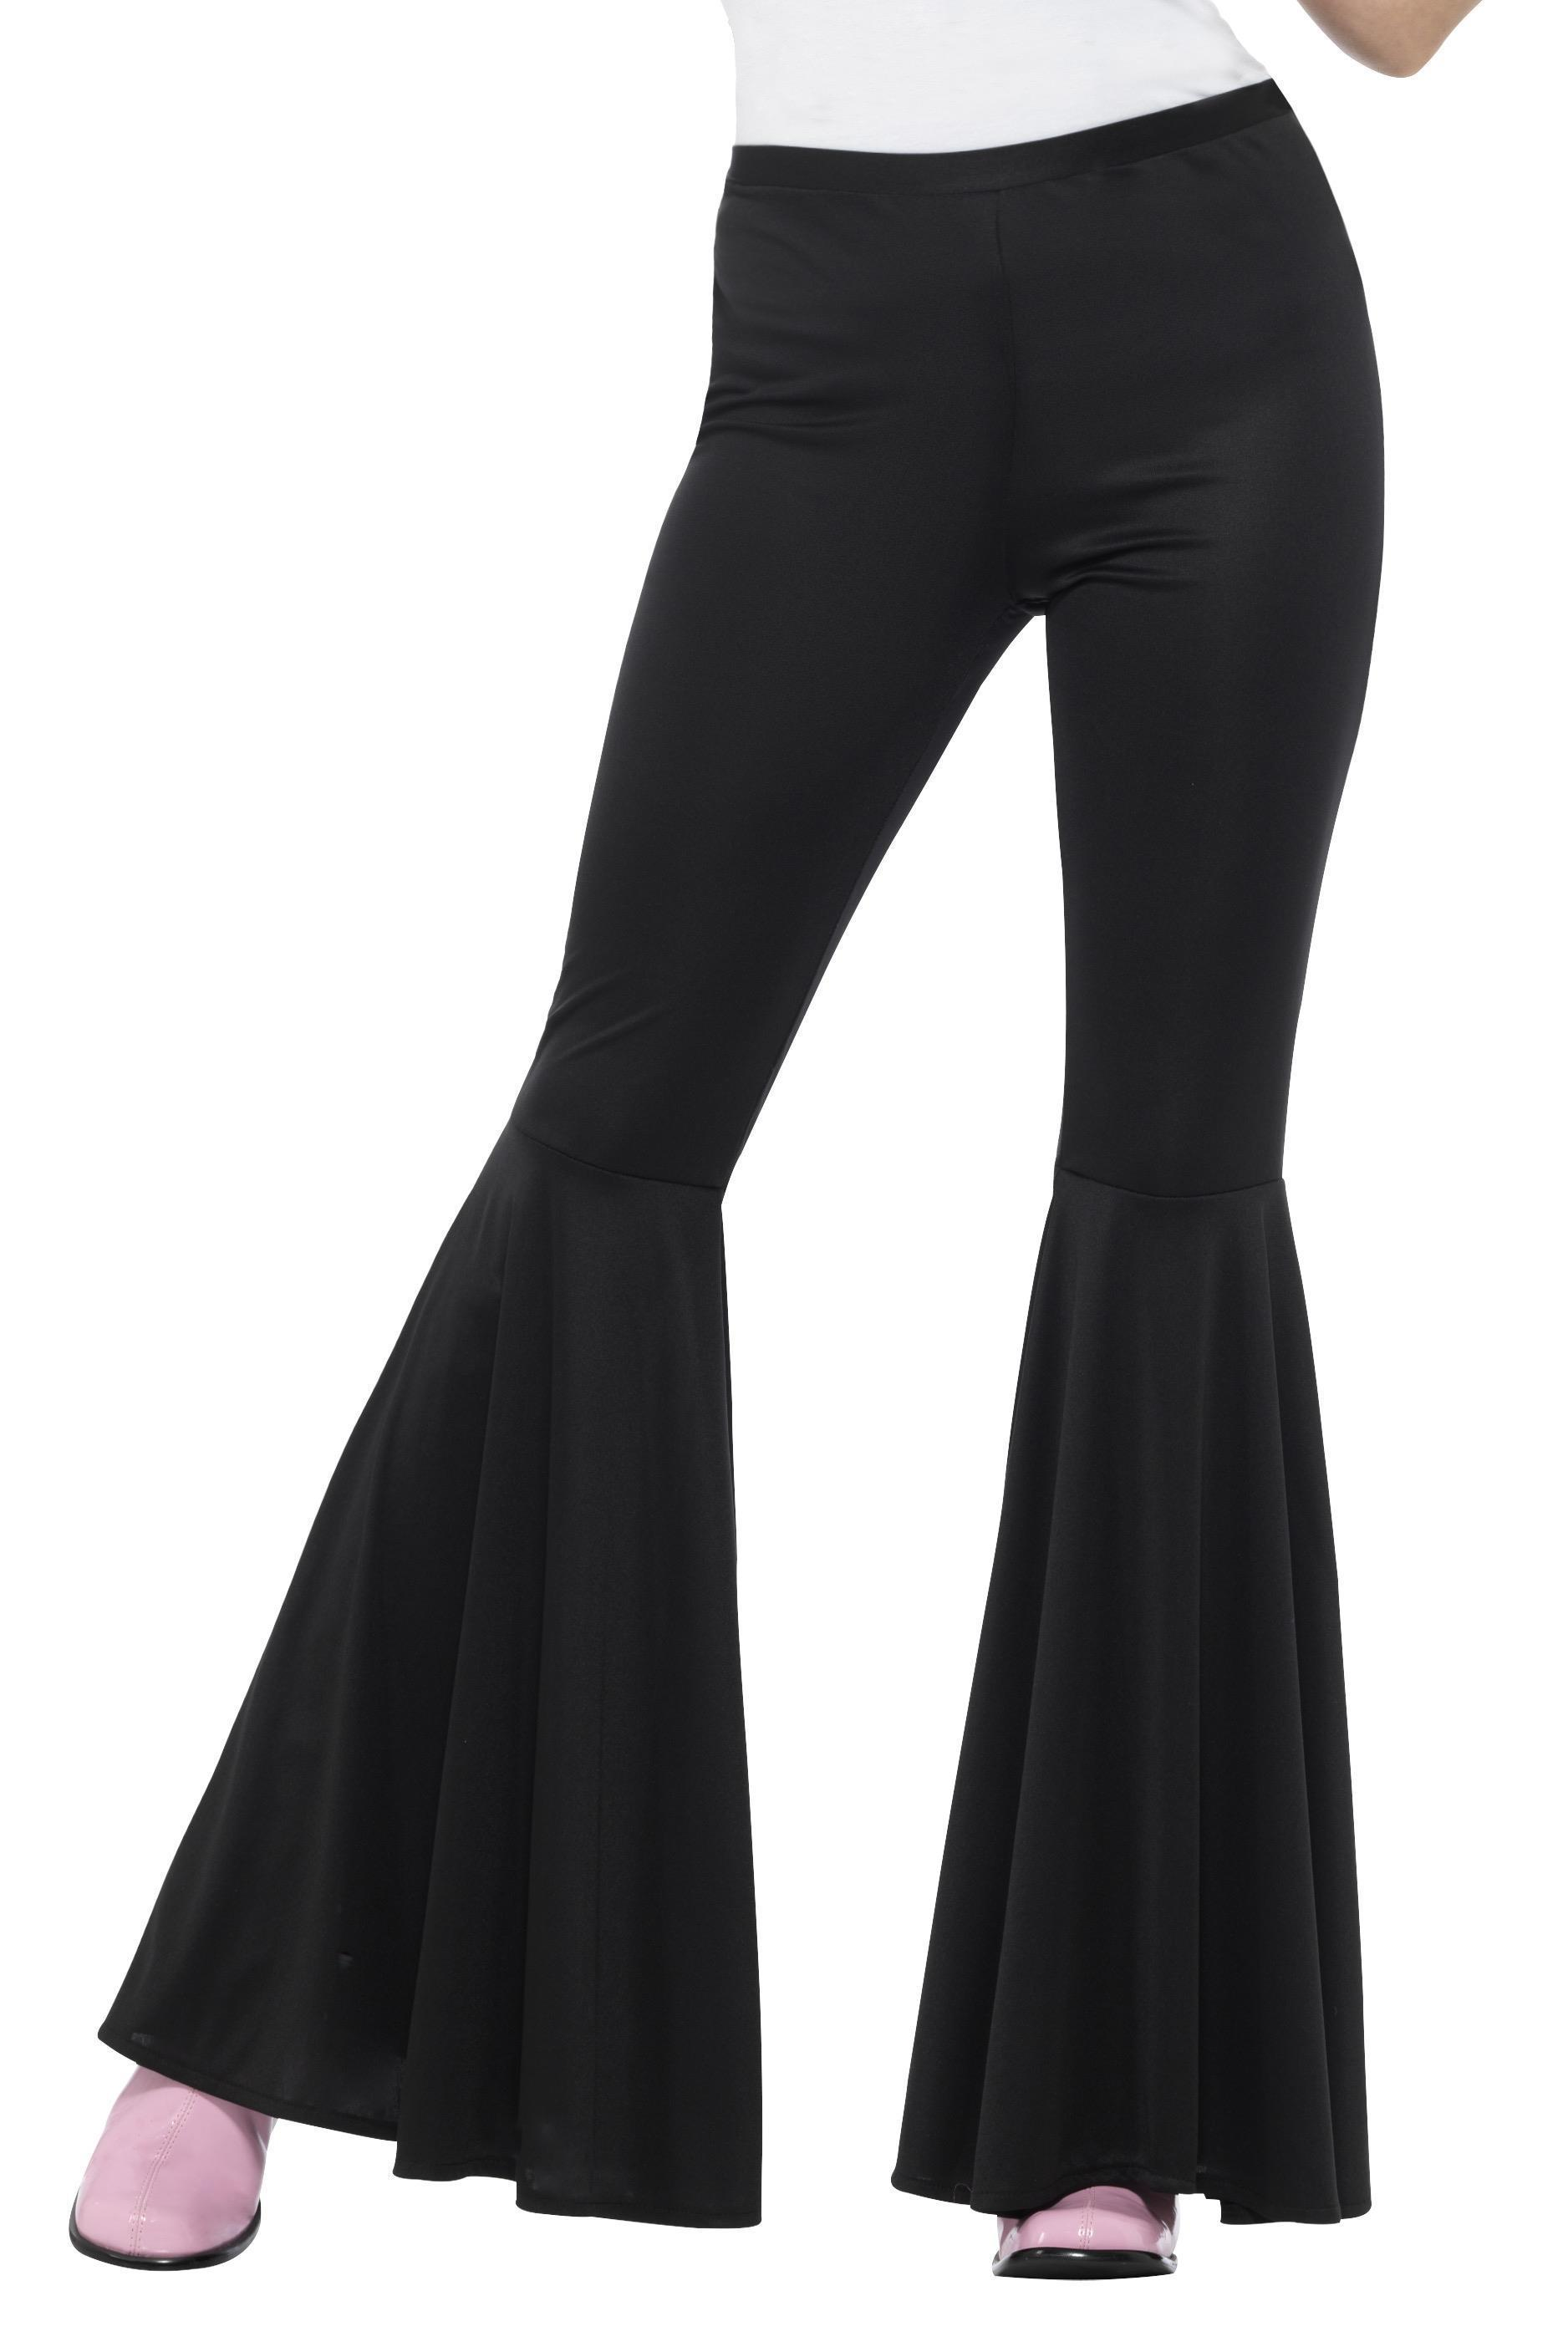 Ladies Flared Trousers Black